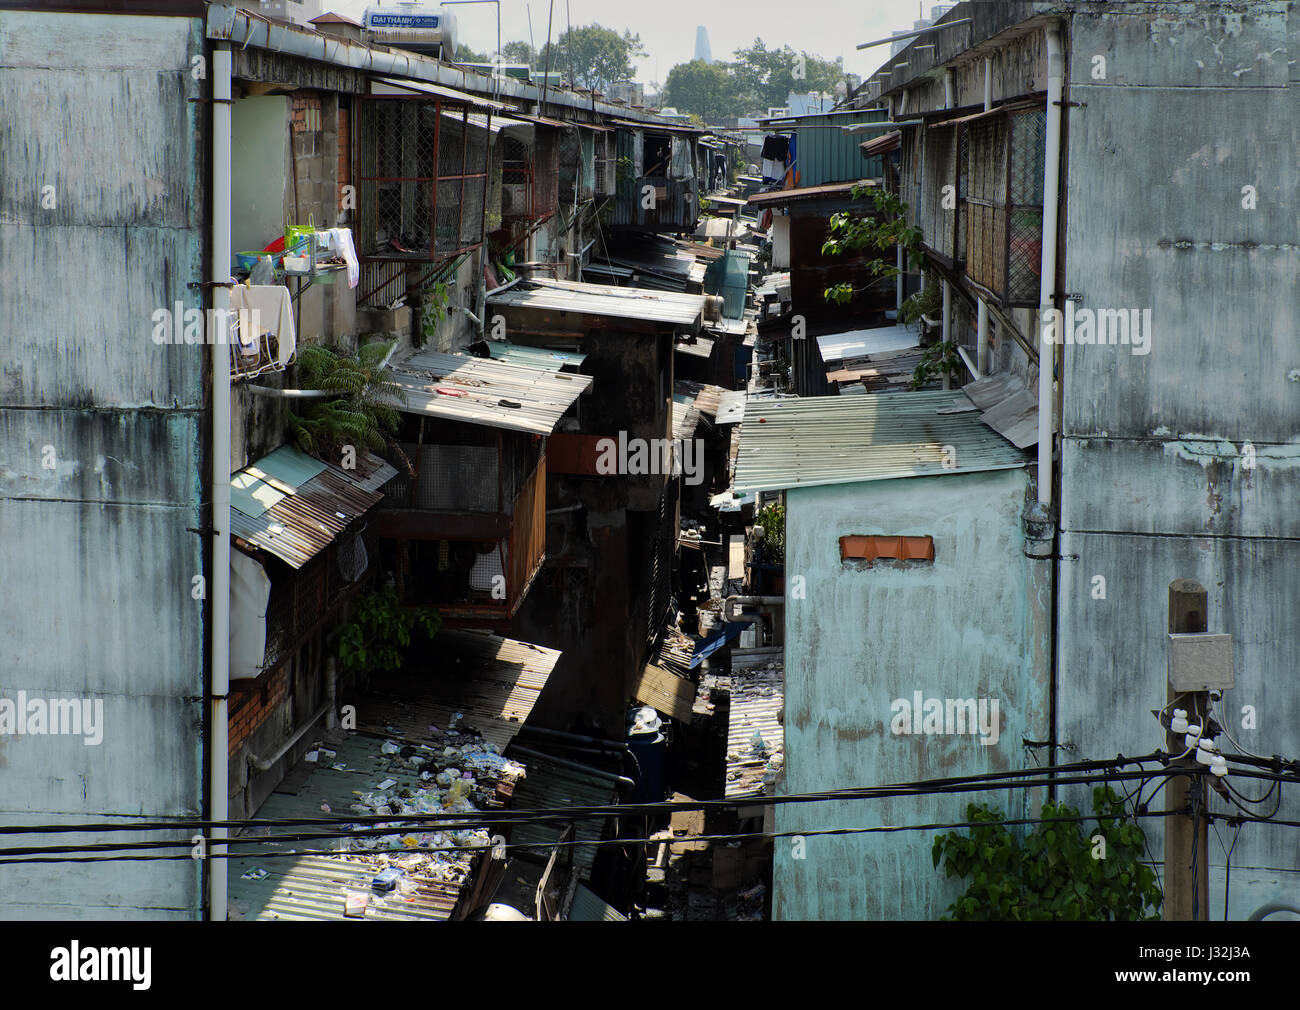 Awful scene behind of old apartment building, extension living space like cote make danger, unsafe situation, rubbish - Stock Image